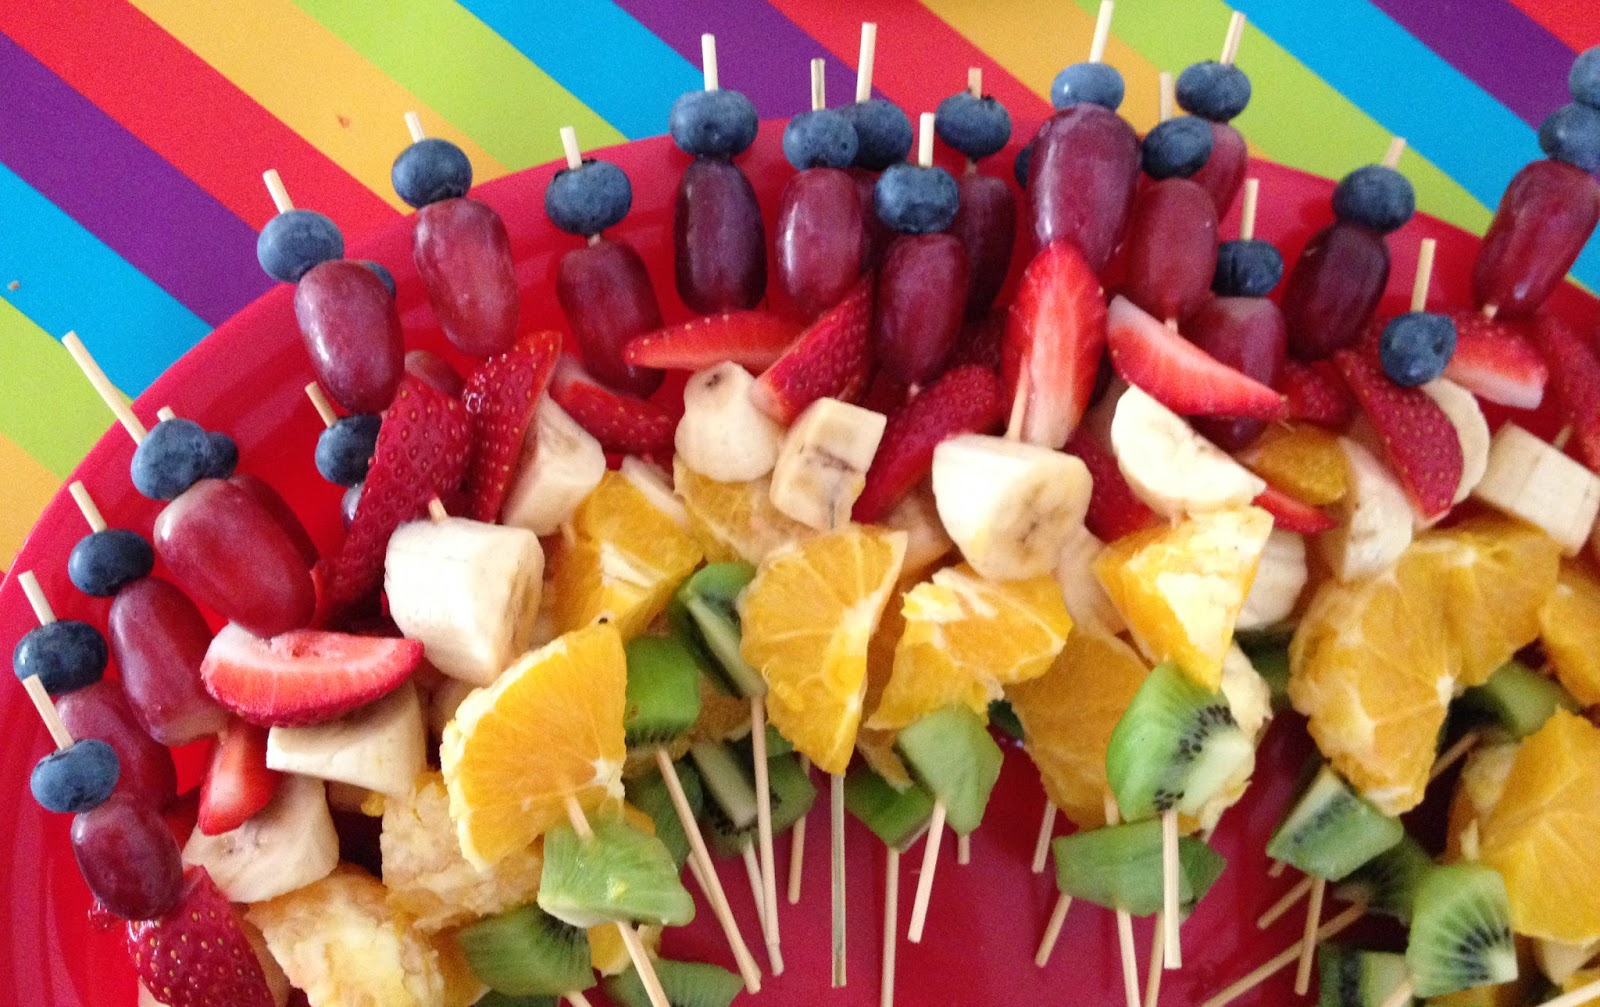 93 food ideas toddler birthday party birthday party food ideas rainbow art craft birthday party food for toddlers forumfinder Image collections